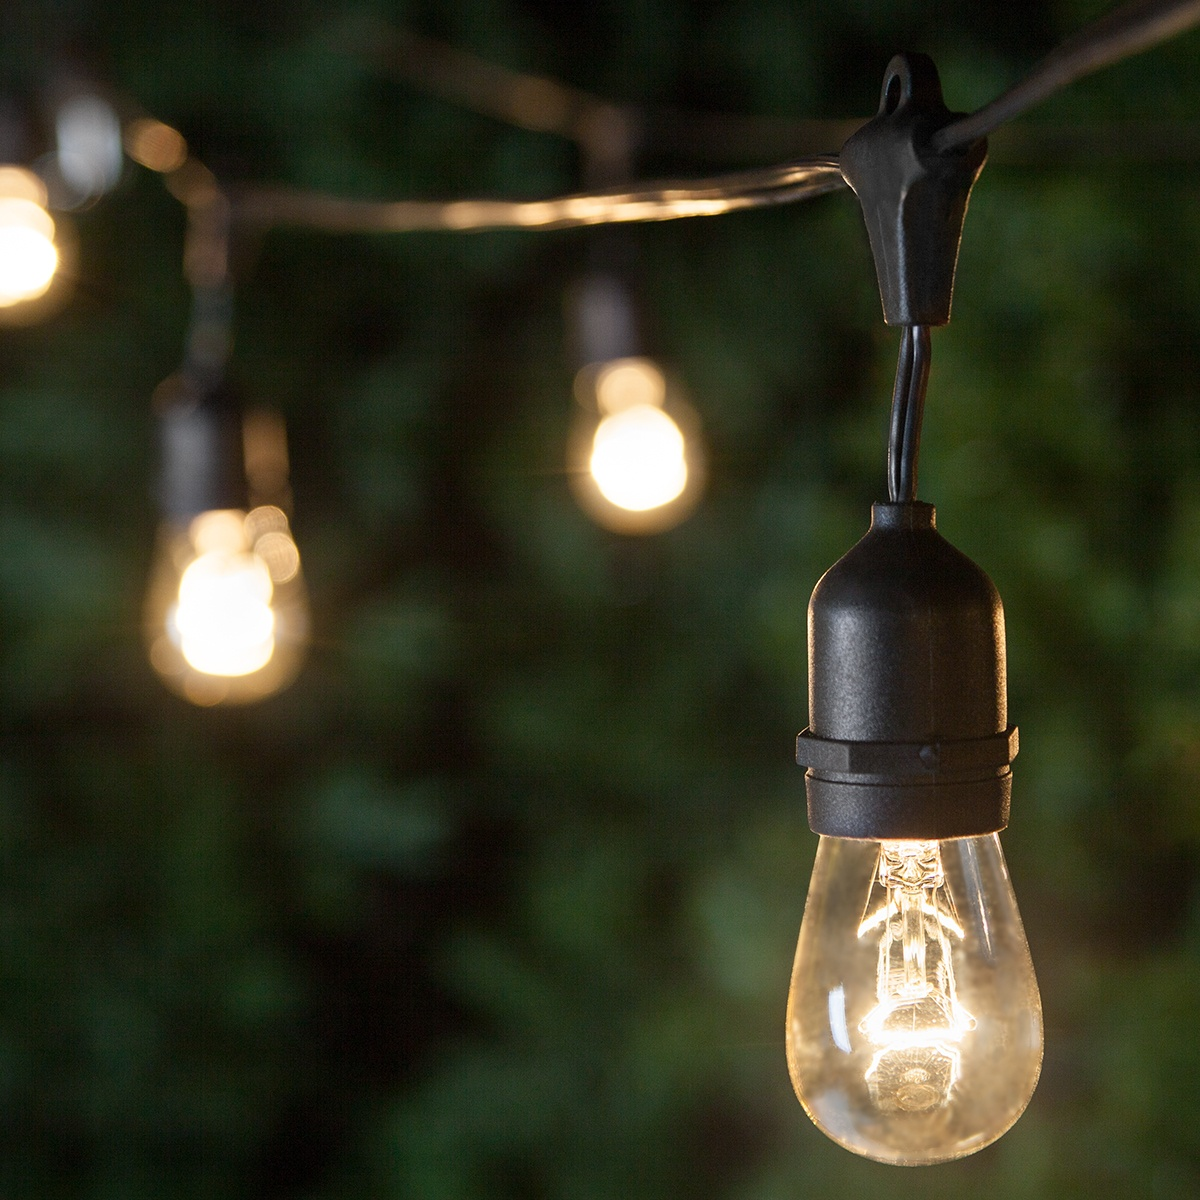 Patio Lights Commercial Clear String 24 S14 E26 Bulbs Black Wire